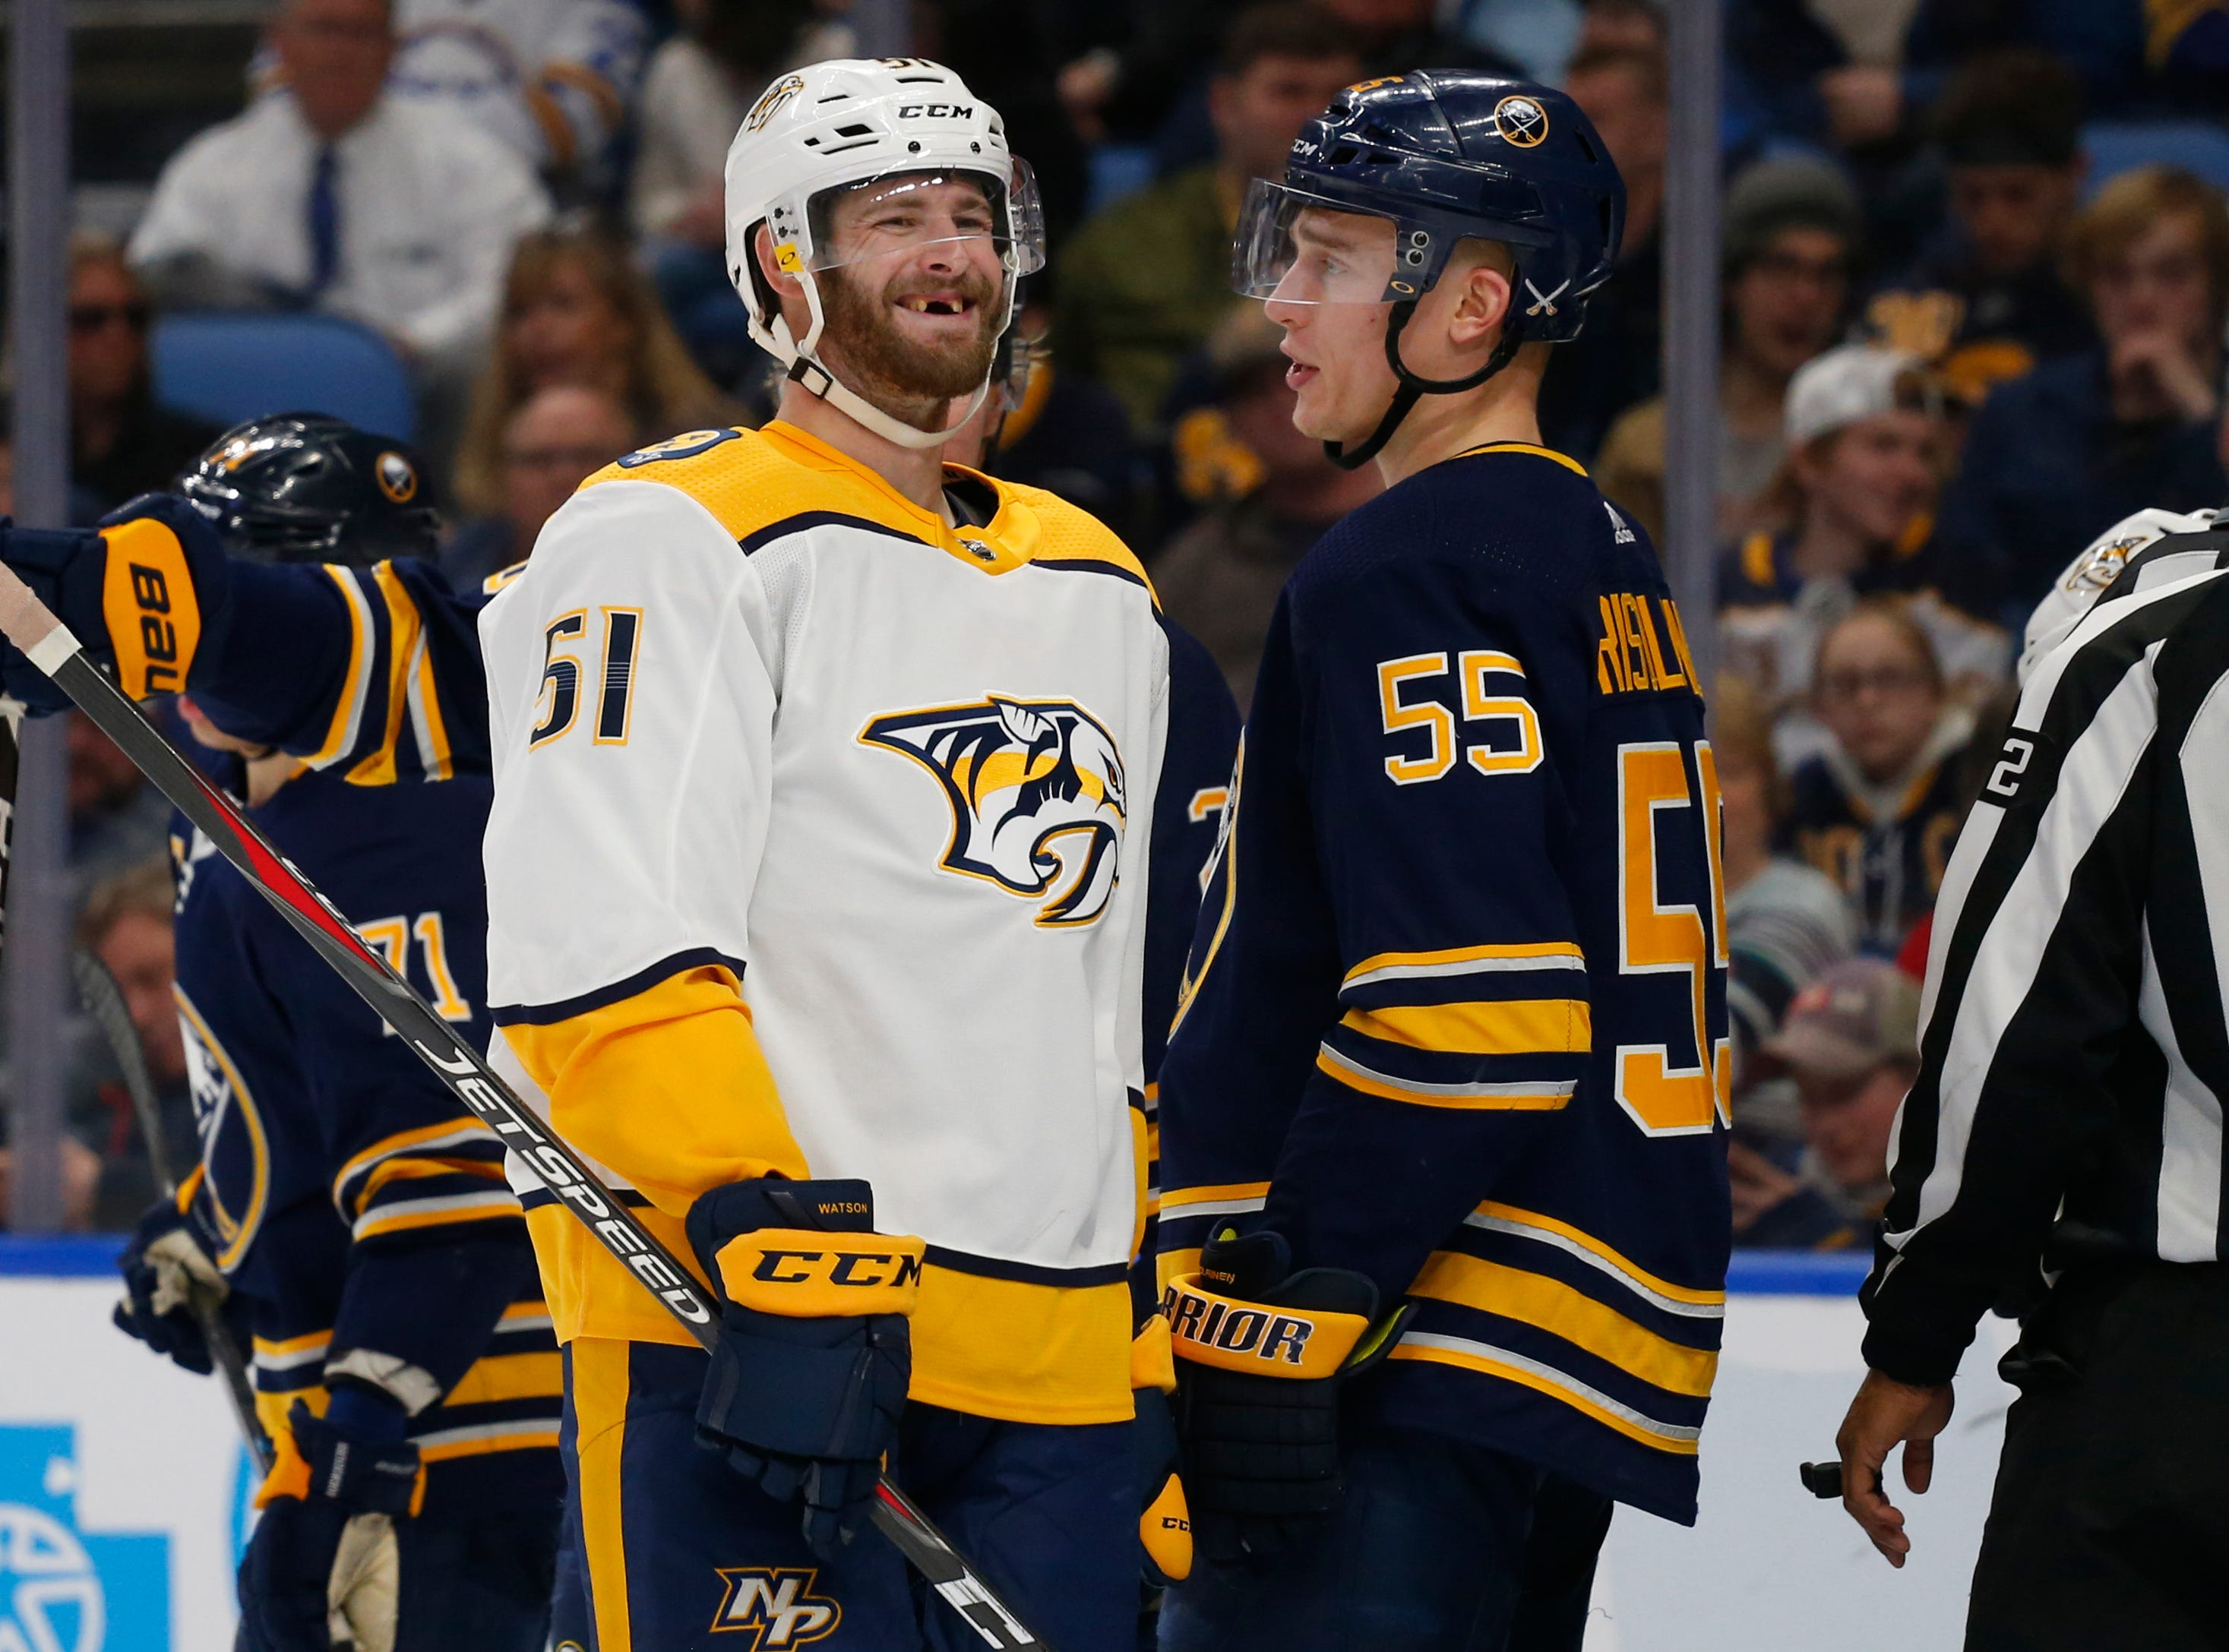 Buffalo Sabres defenseman Rasmus Ristolainen (55) and Nashville Predators forward Austin Watson (51) exchange words during the second period of an NHL hockey game Tuesday, April 2, 2019, in Buffalo, N.Y.